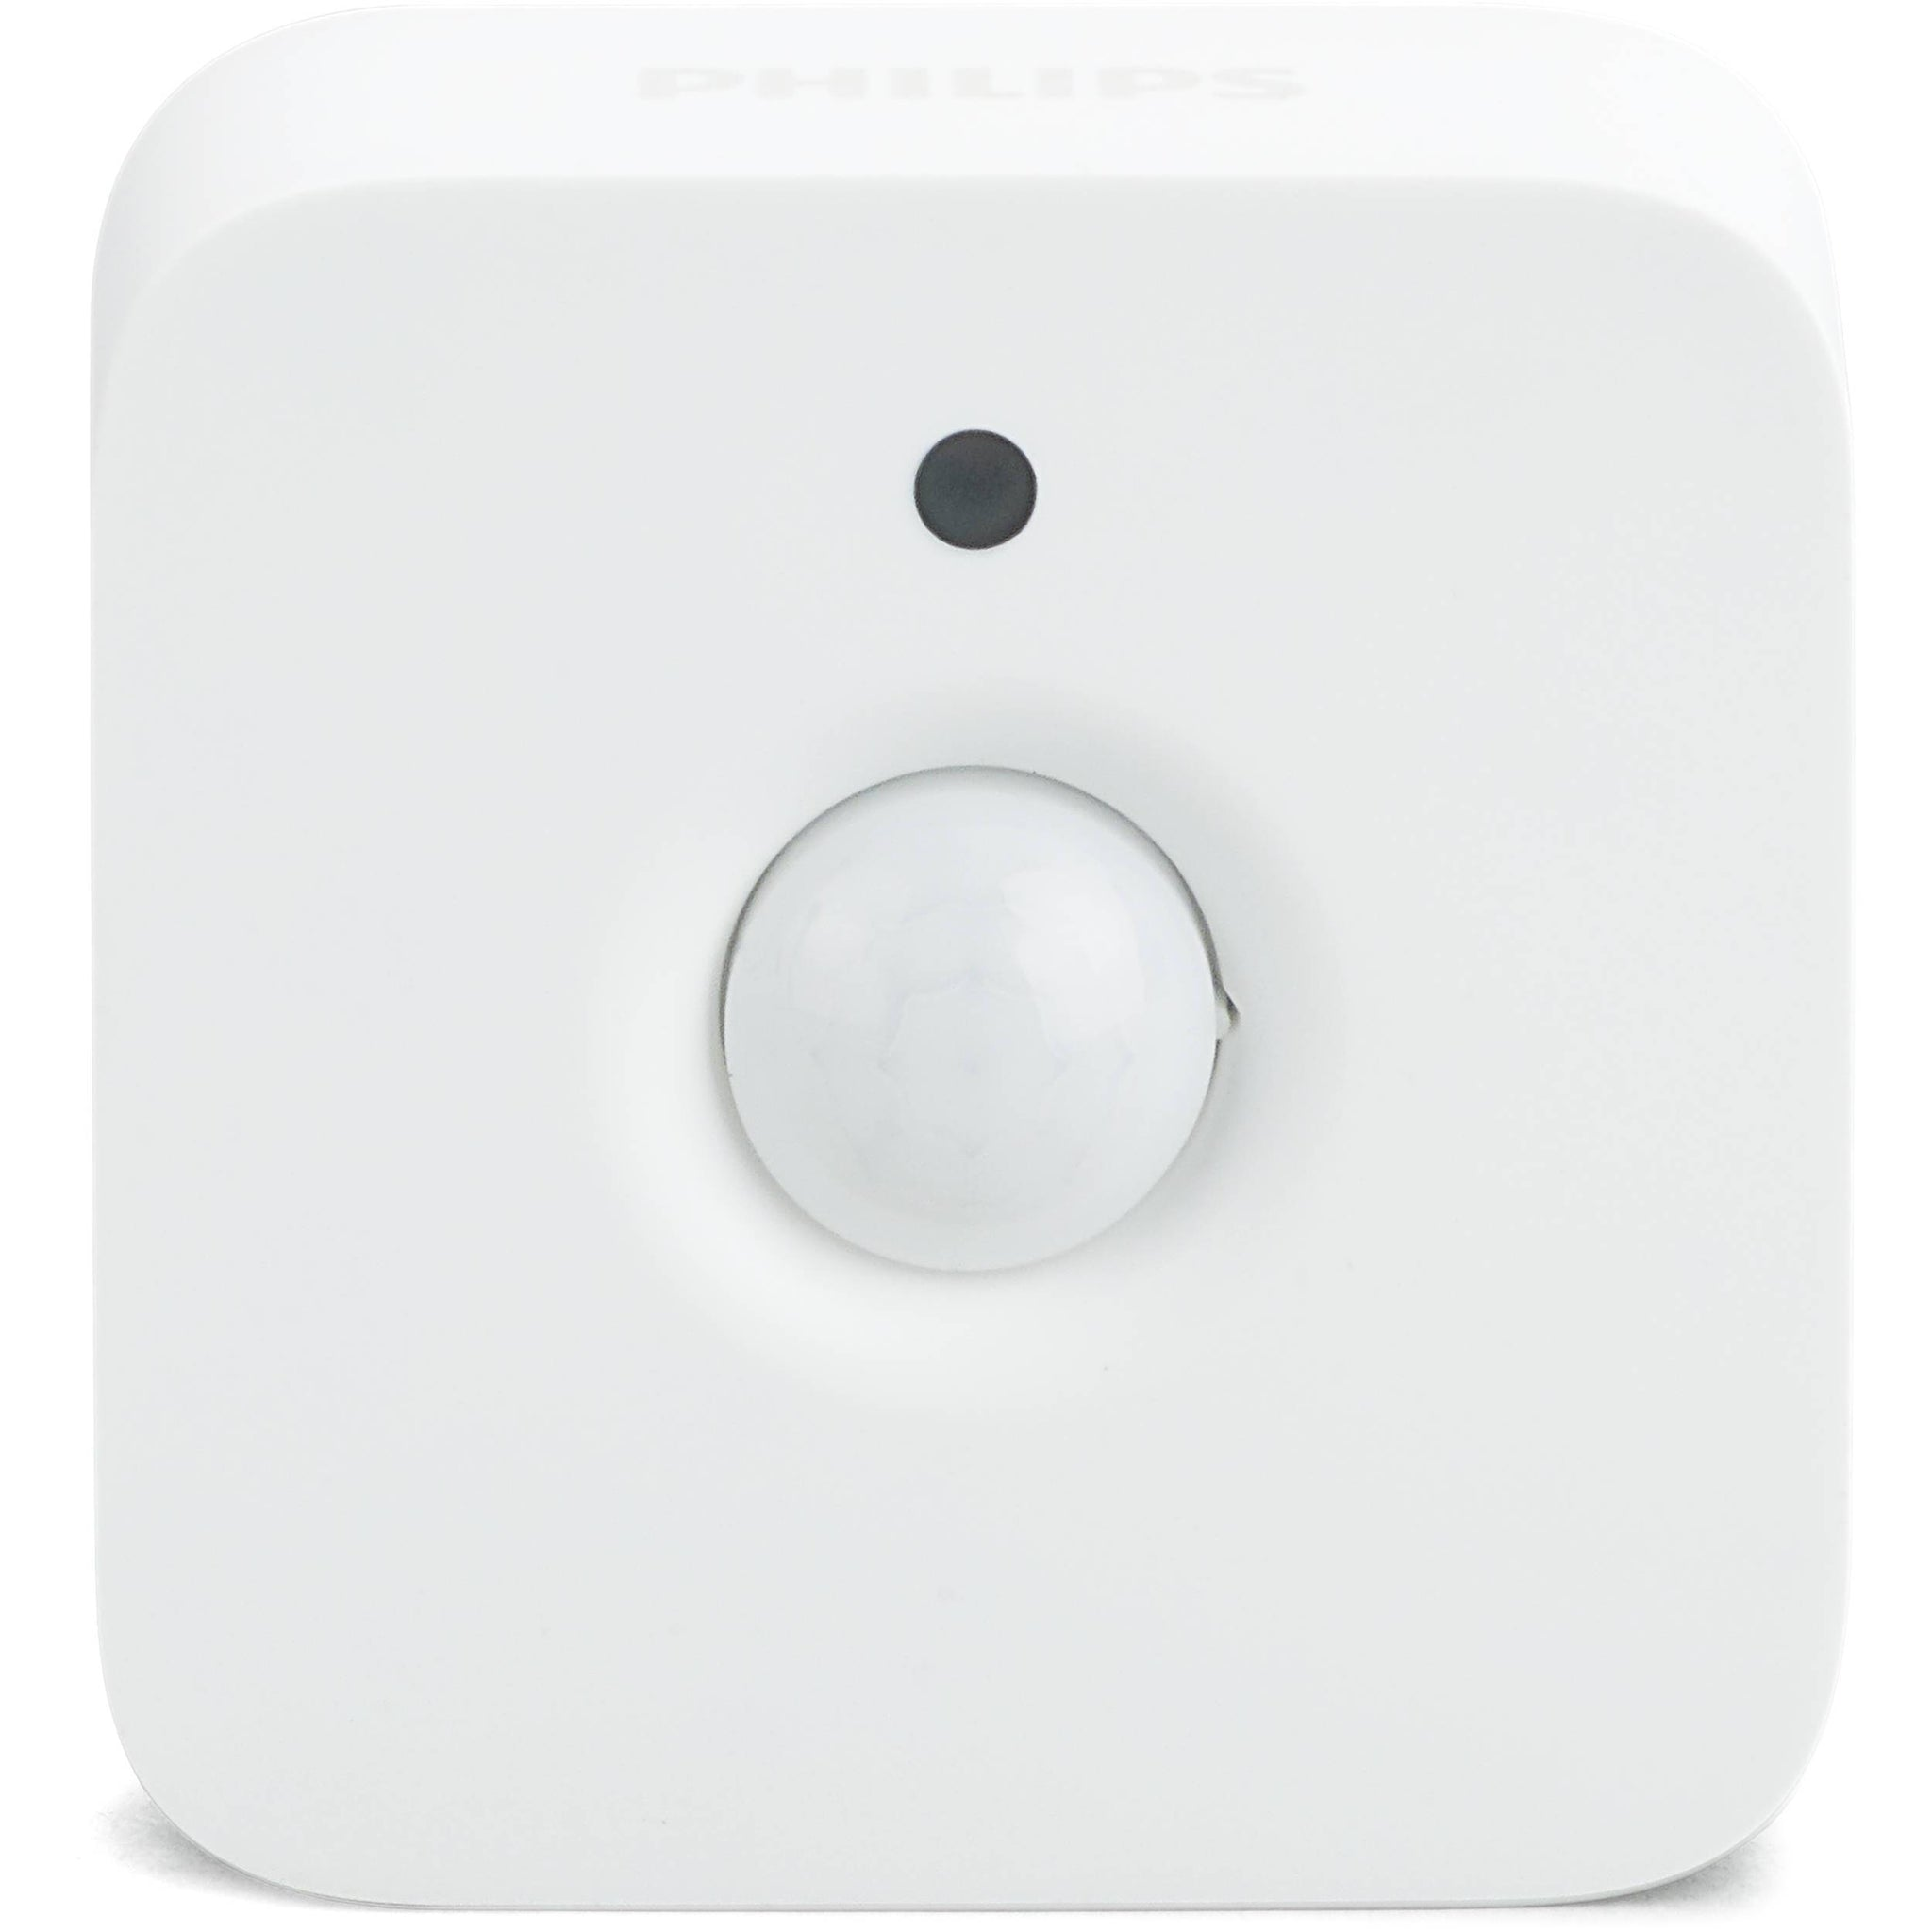 Philips Hue Motion Sensor Detector for the Hue System